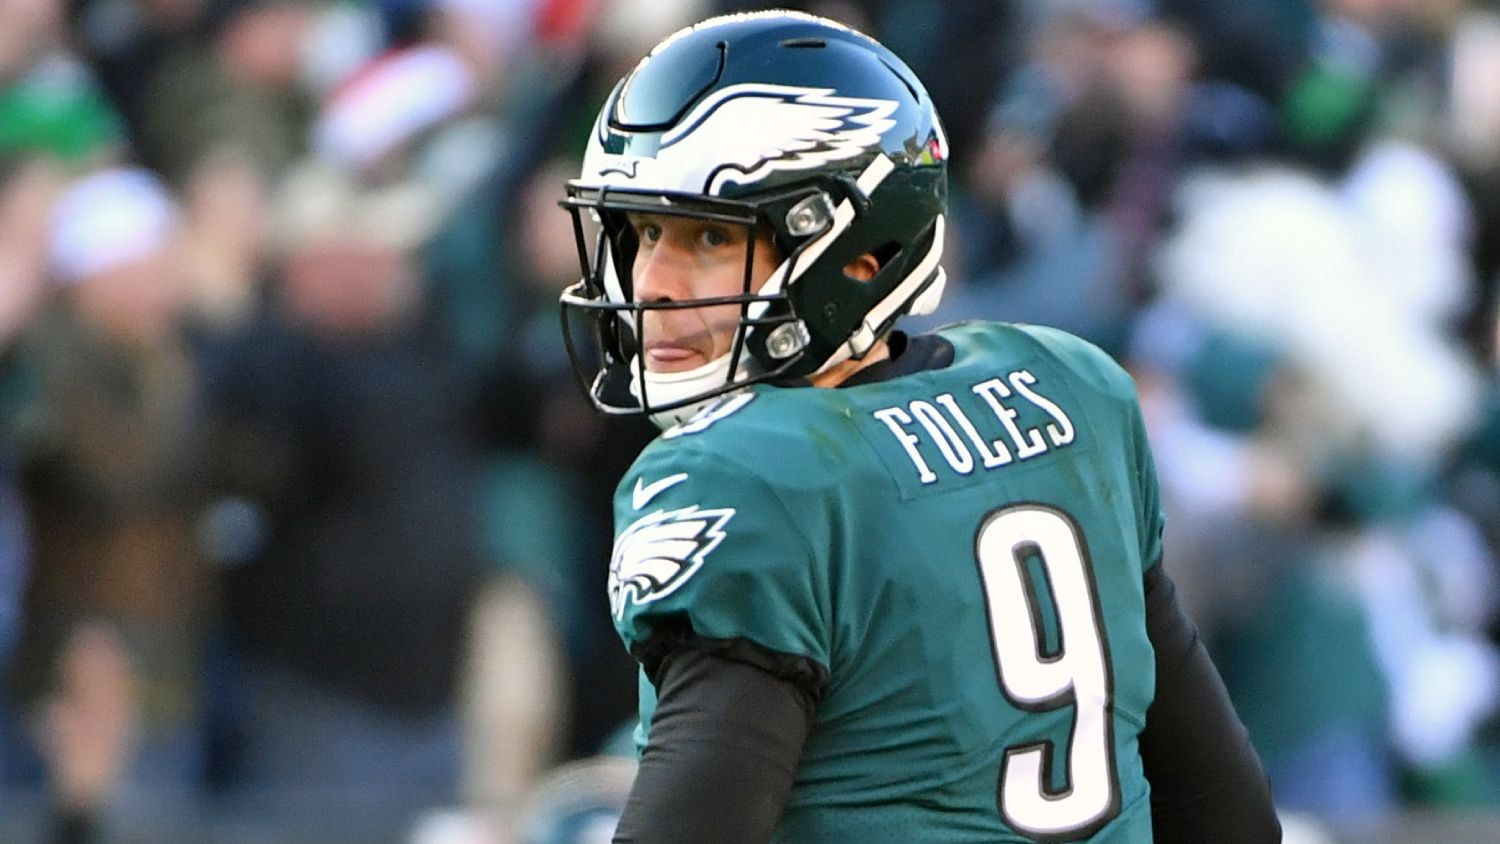 Would A Return To The Eagles Make Sense For Nick Foles National Football League News In 2020 Football National Football League Football League